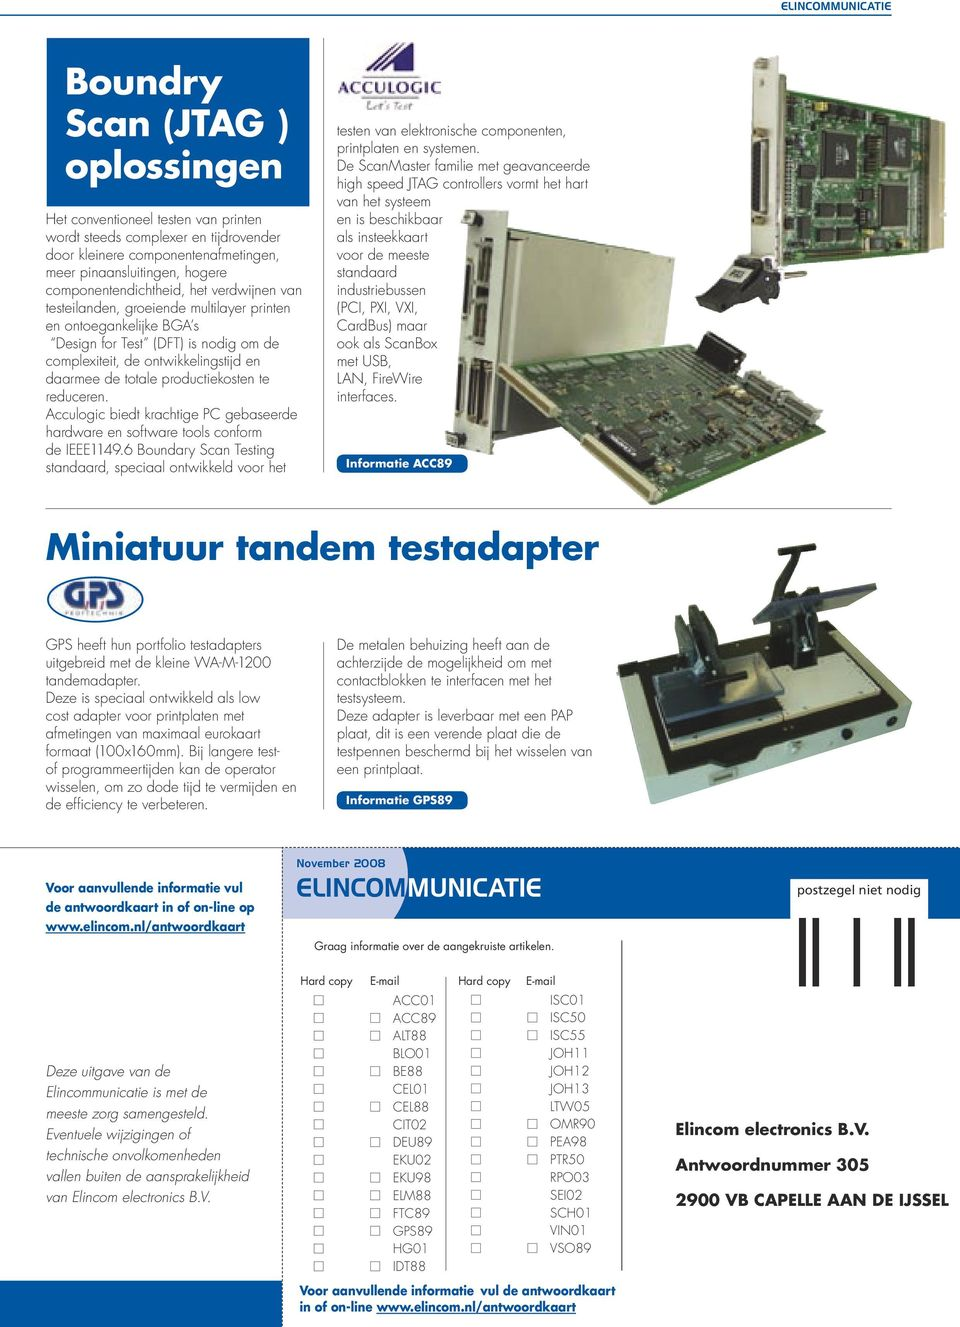 reduceren. Acculogic biedt krachtige PC gebaseerde hardware en software tools conform de IEEE1149.